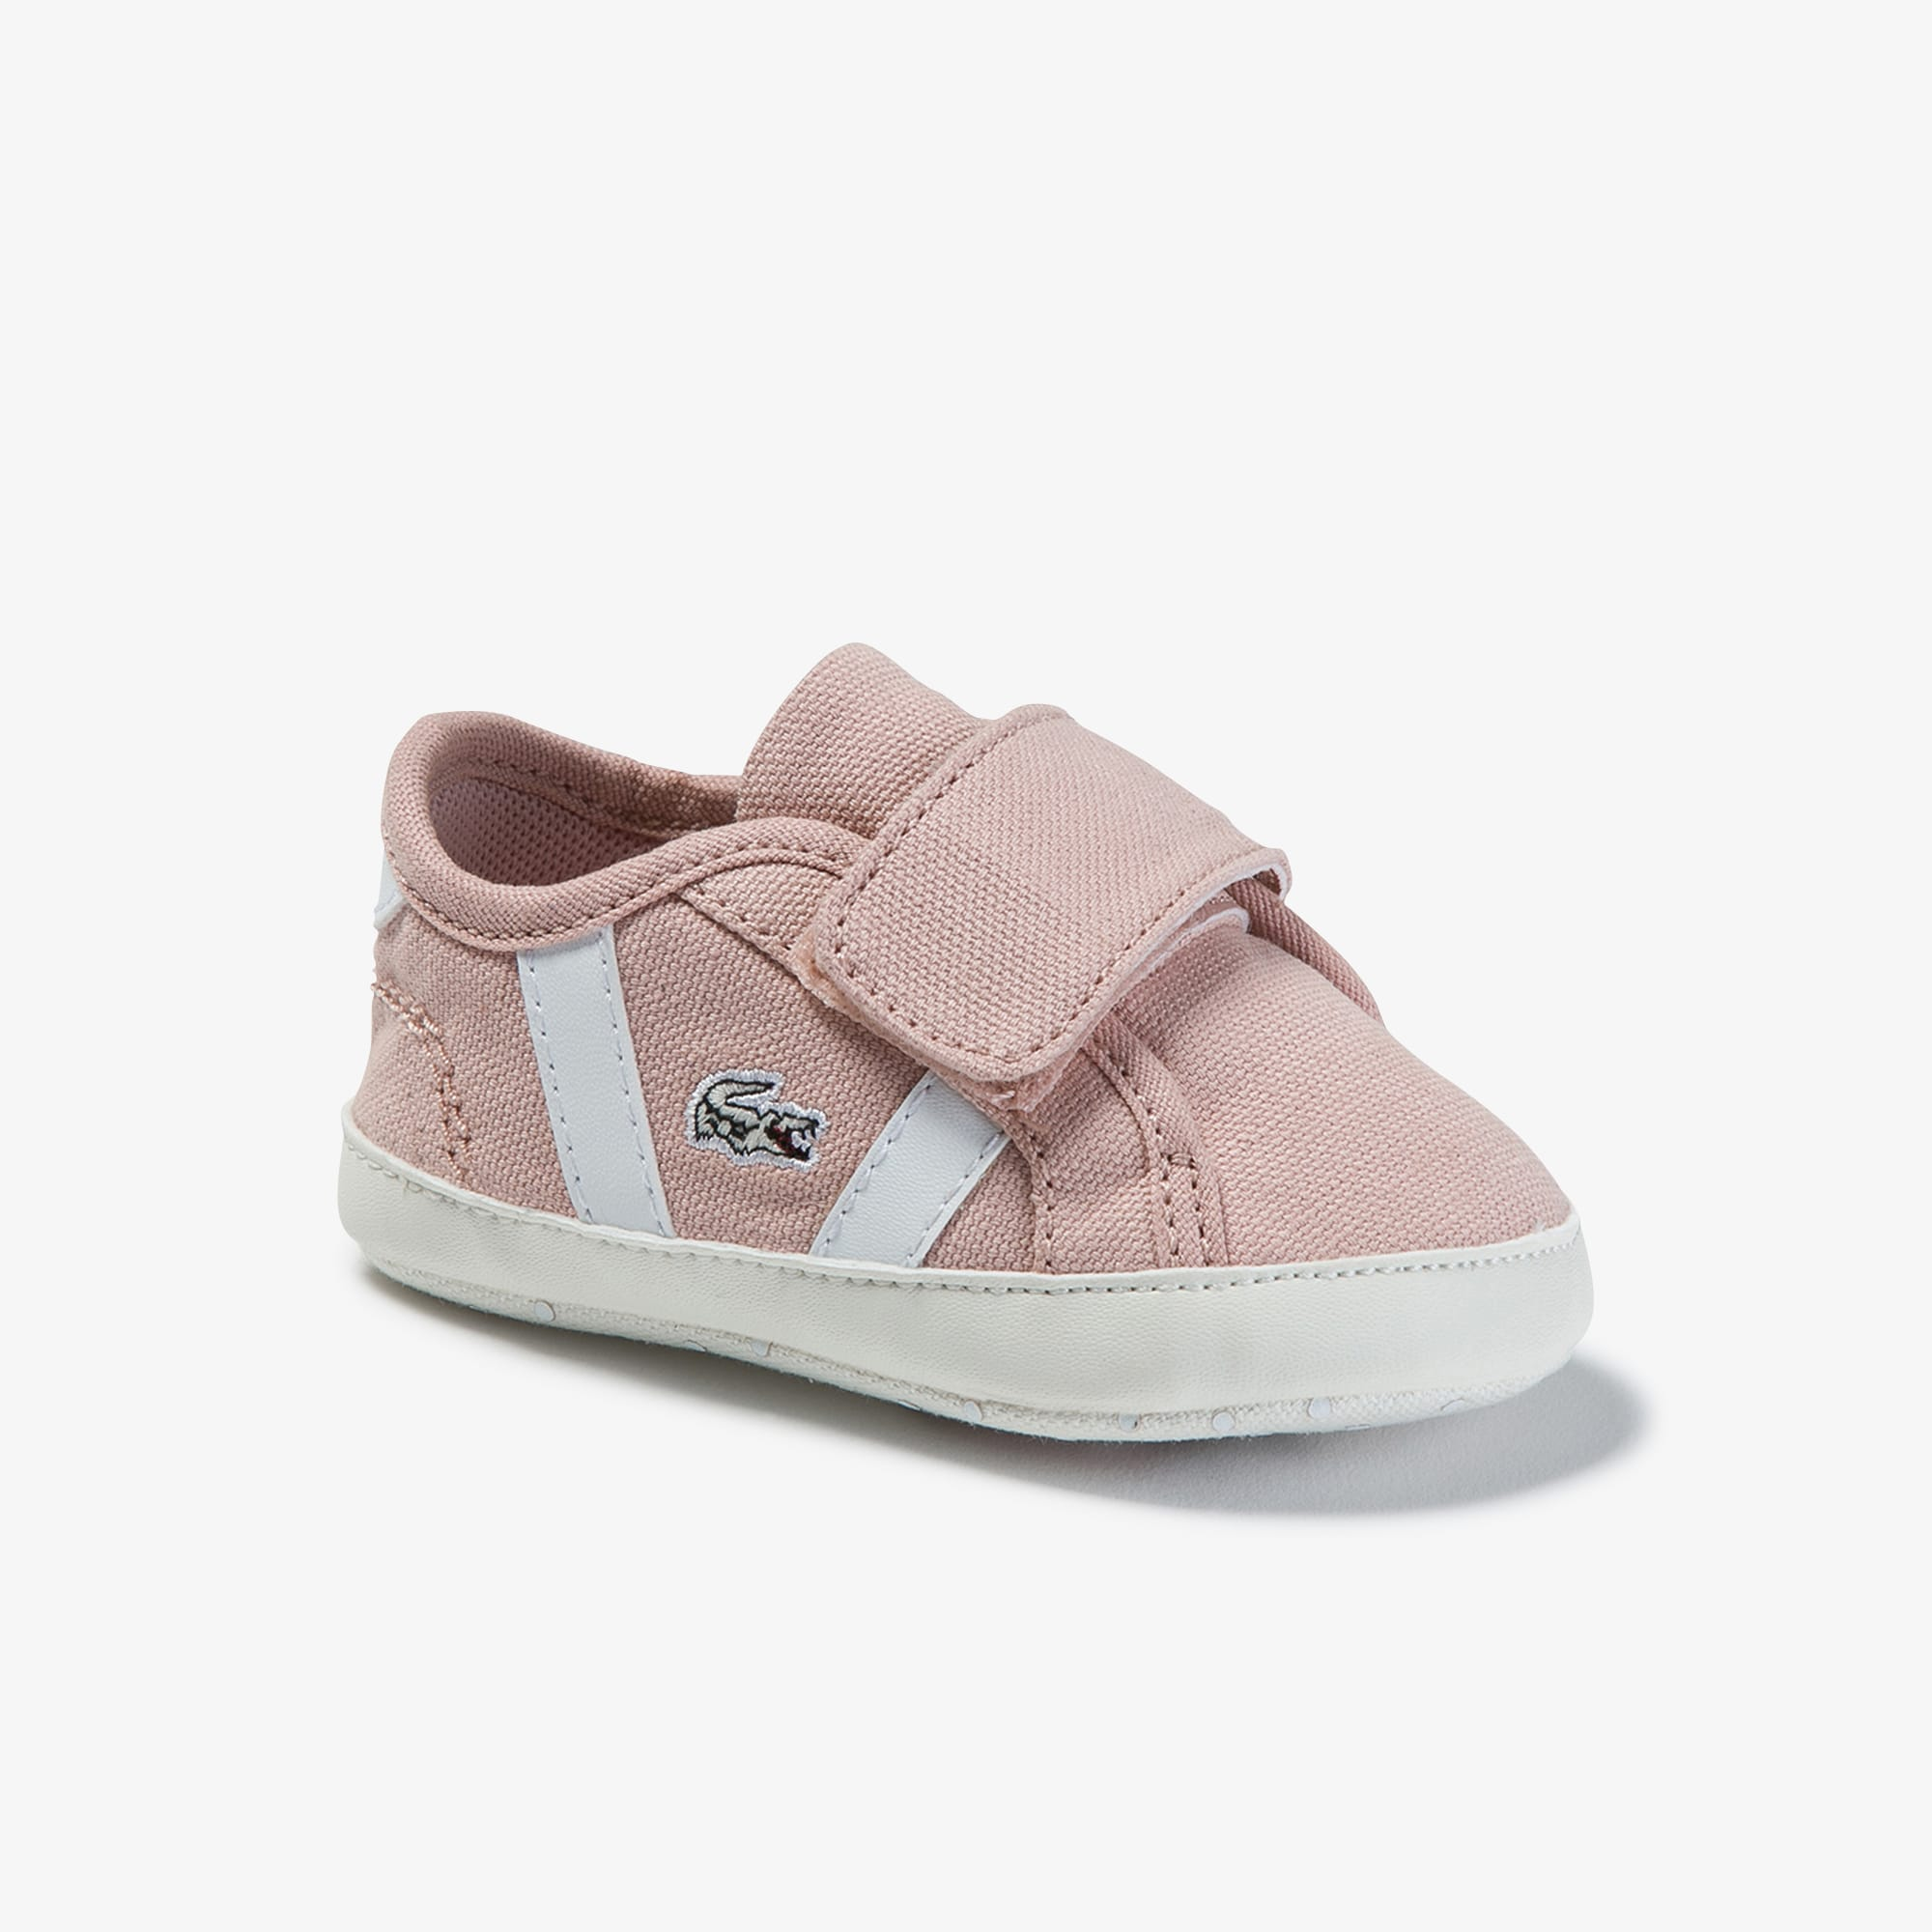 Baby-Sneakers SILELINE aus Canvas